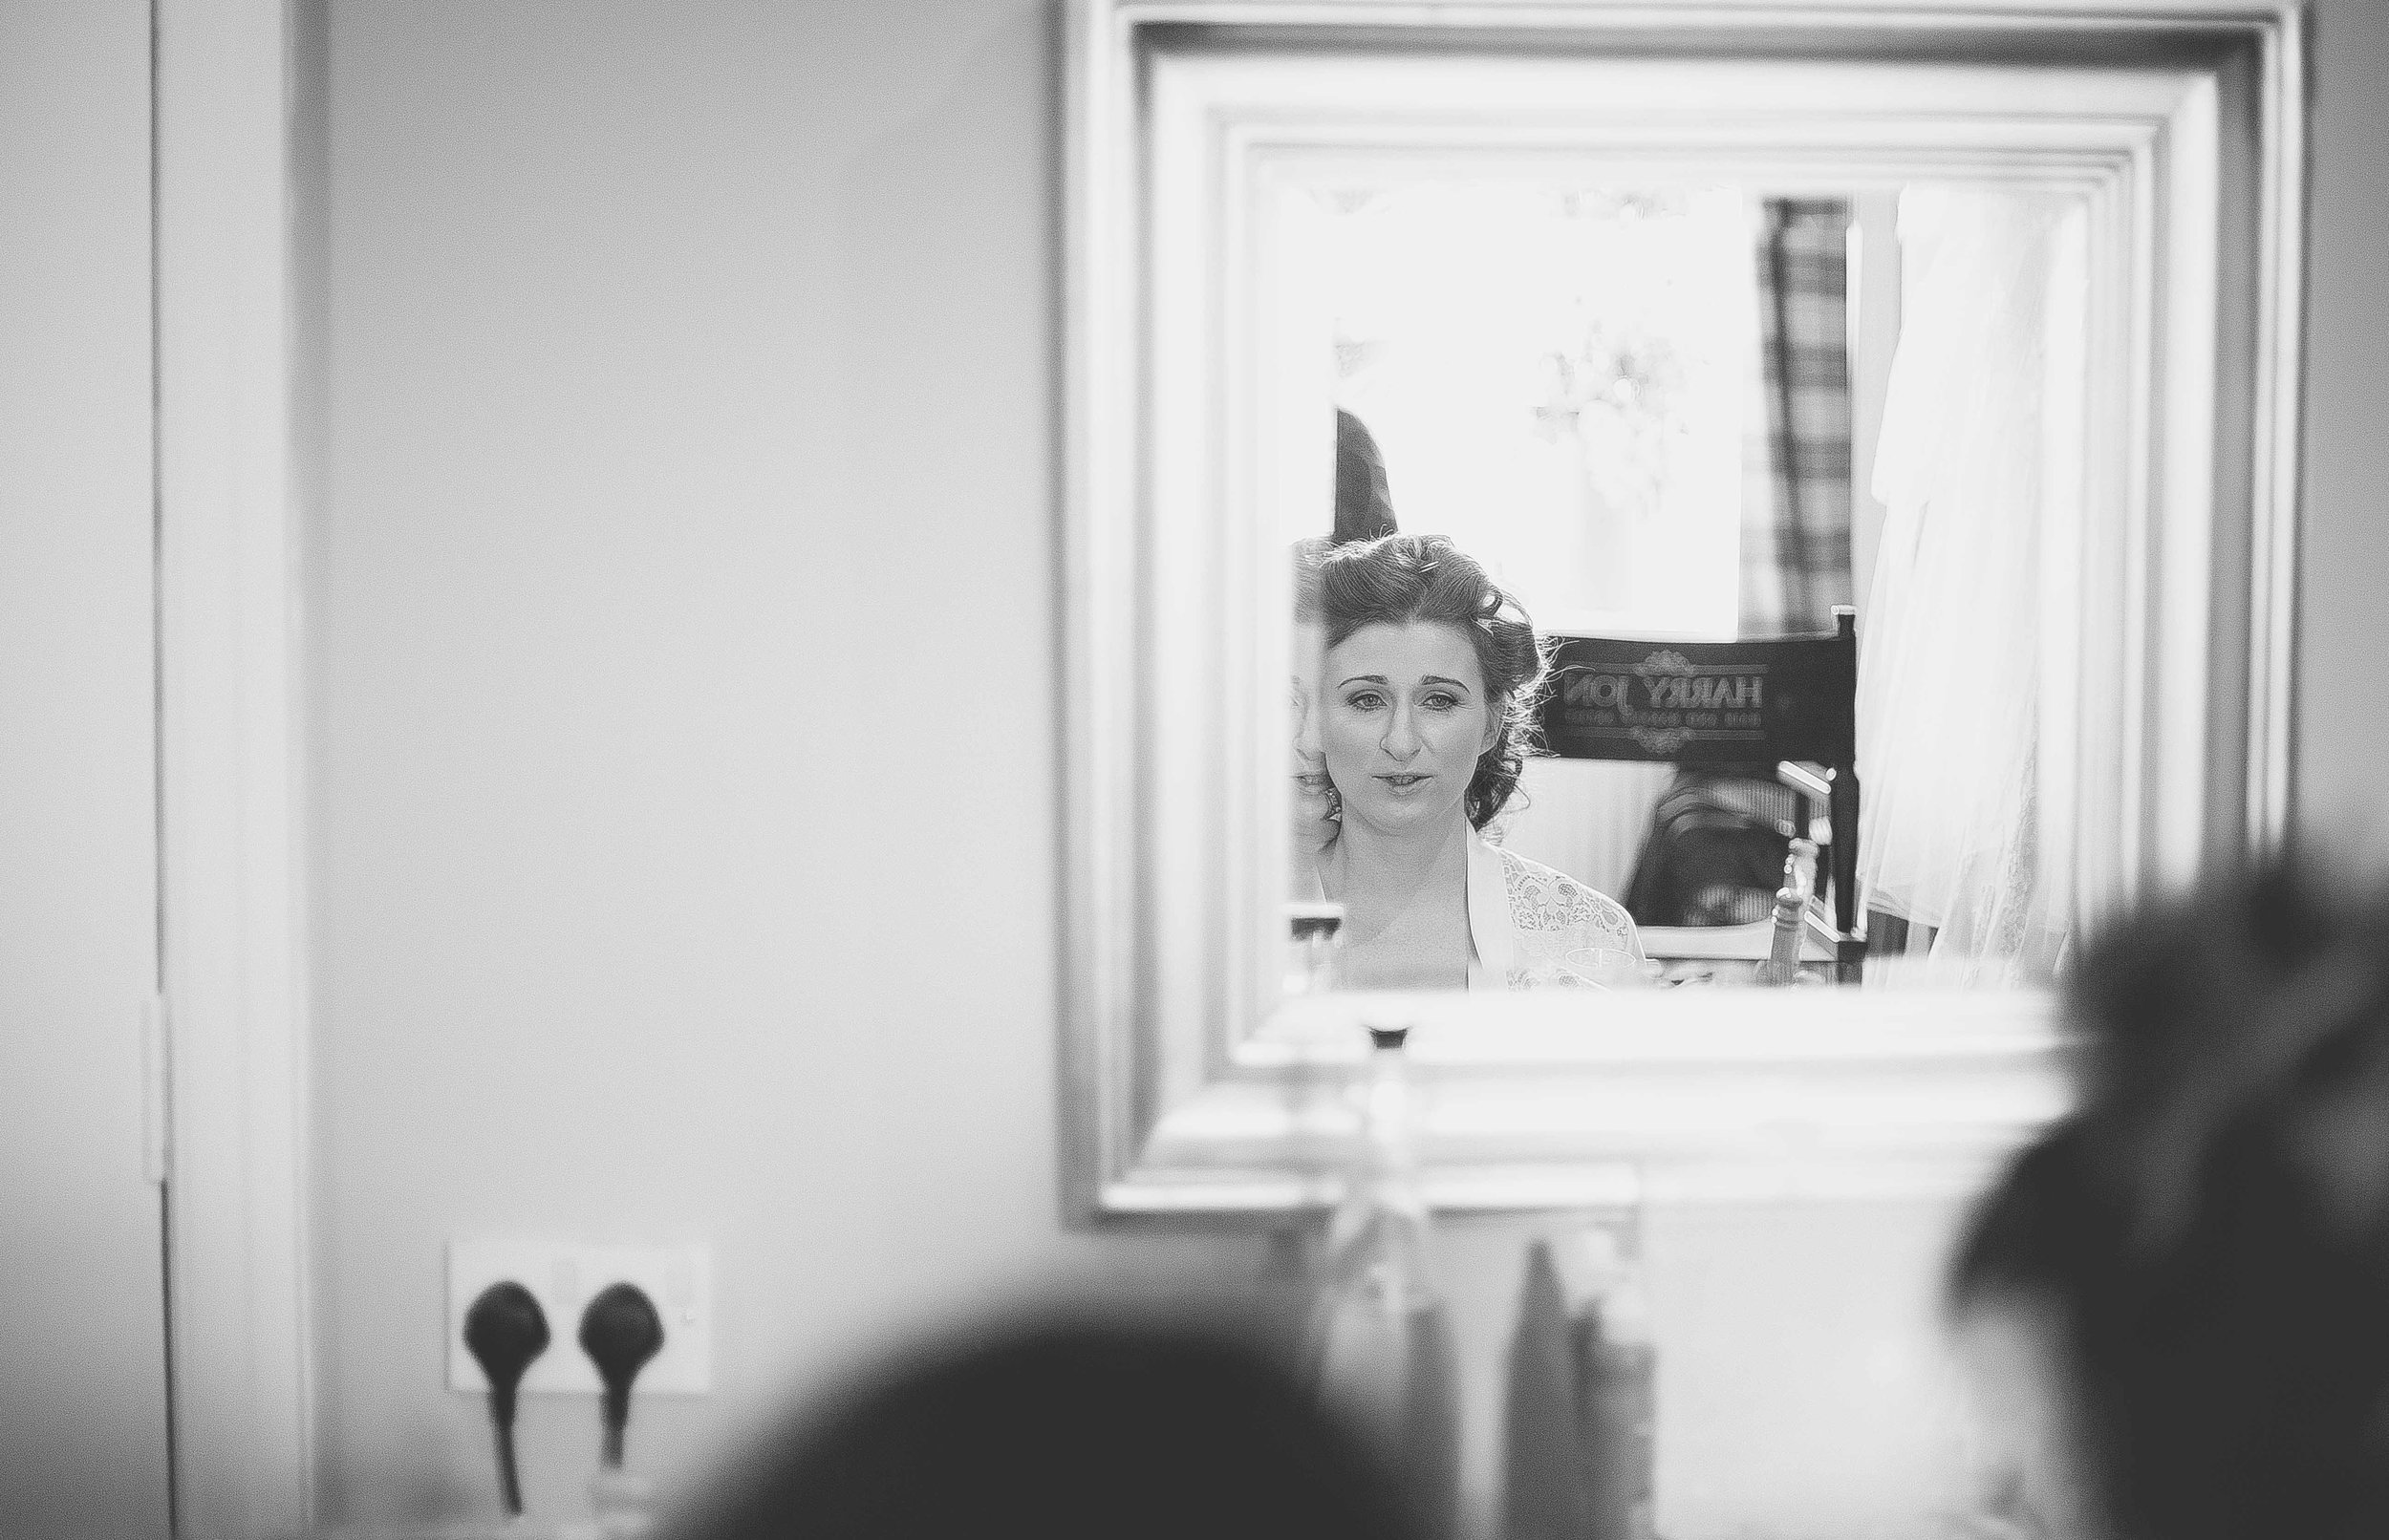 Wedding photographer Lancashire (1 of 1)-7.jpg